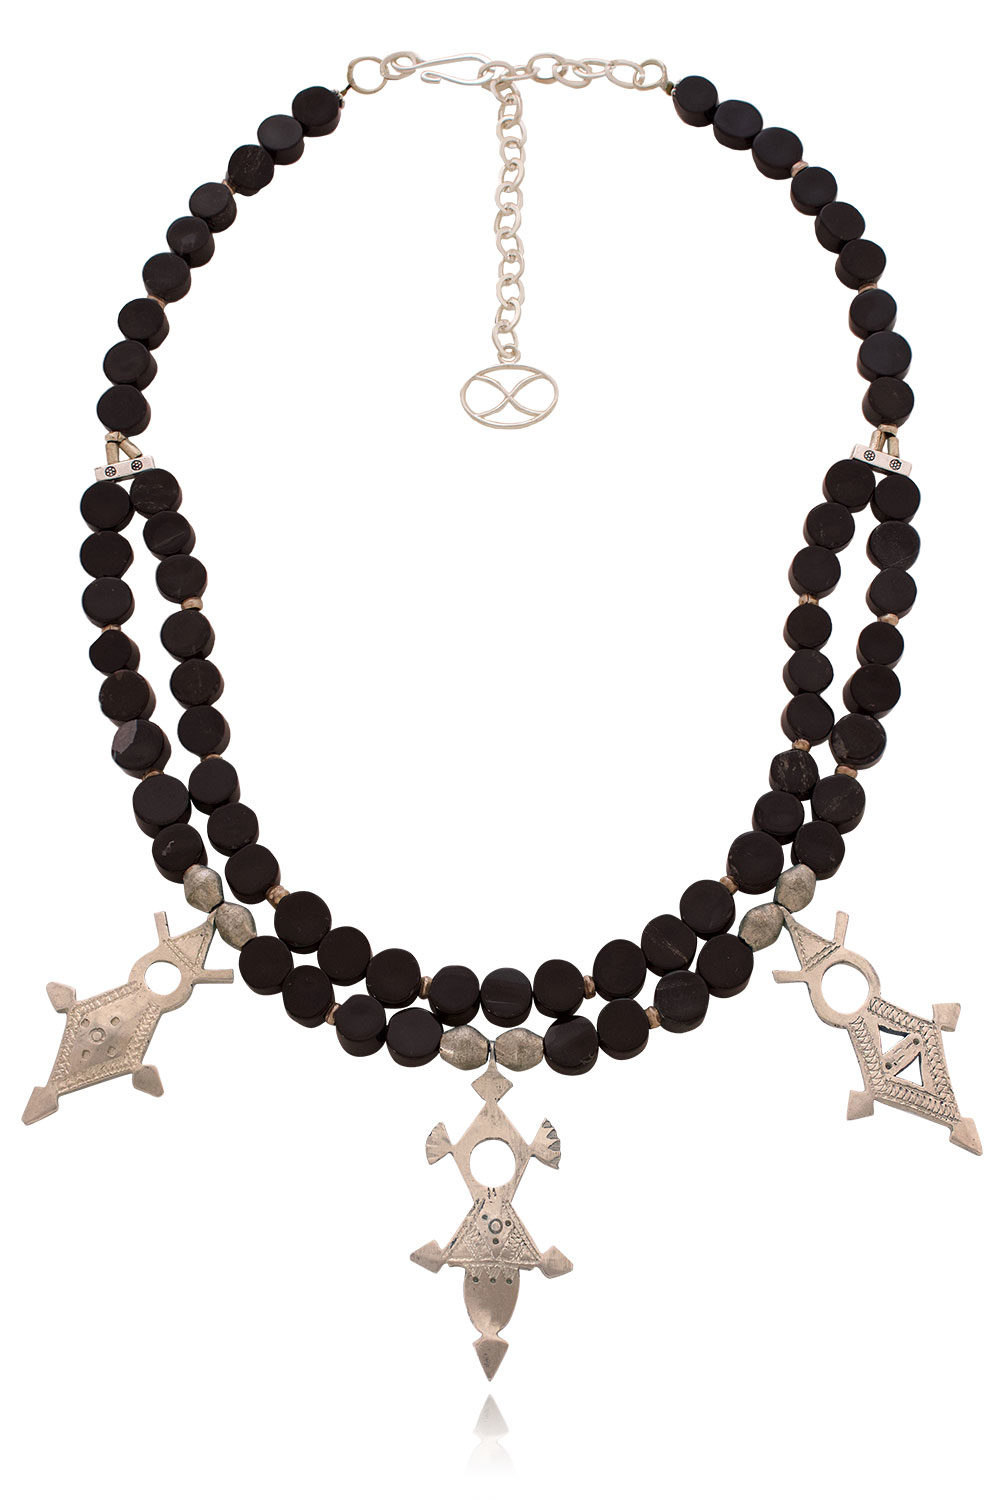 Machiko Tuareg black onyx necklace by SHIKHAZURI